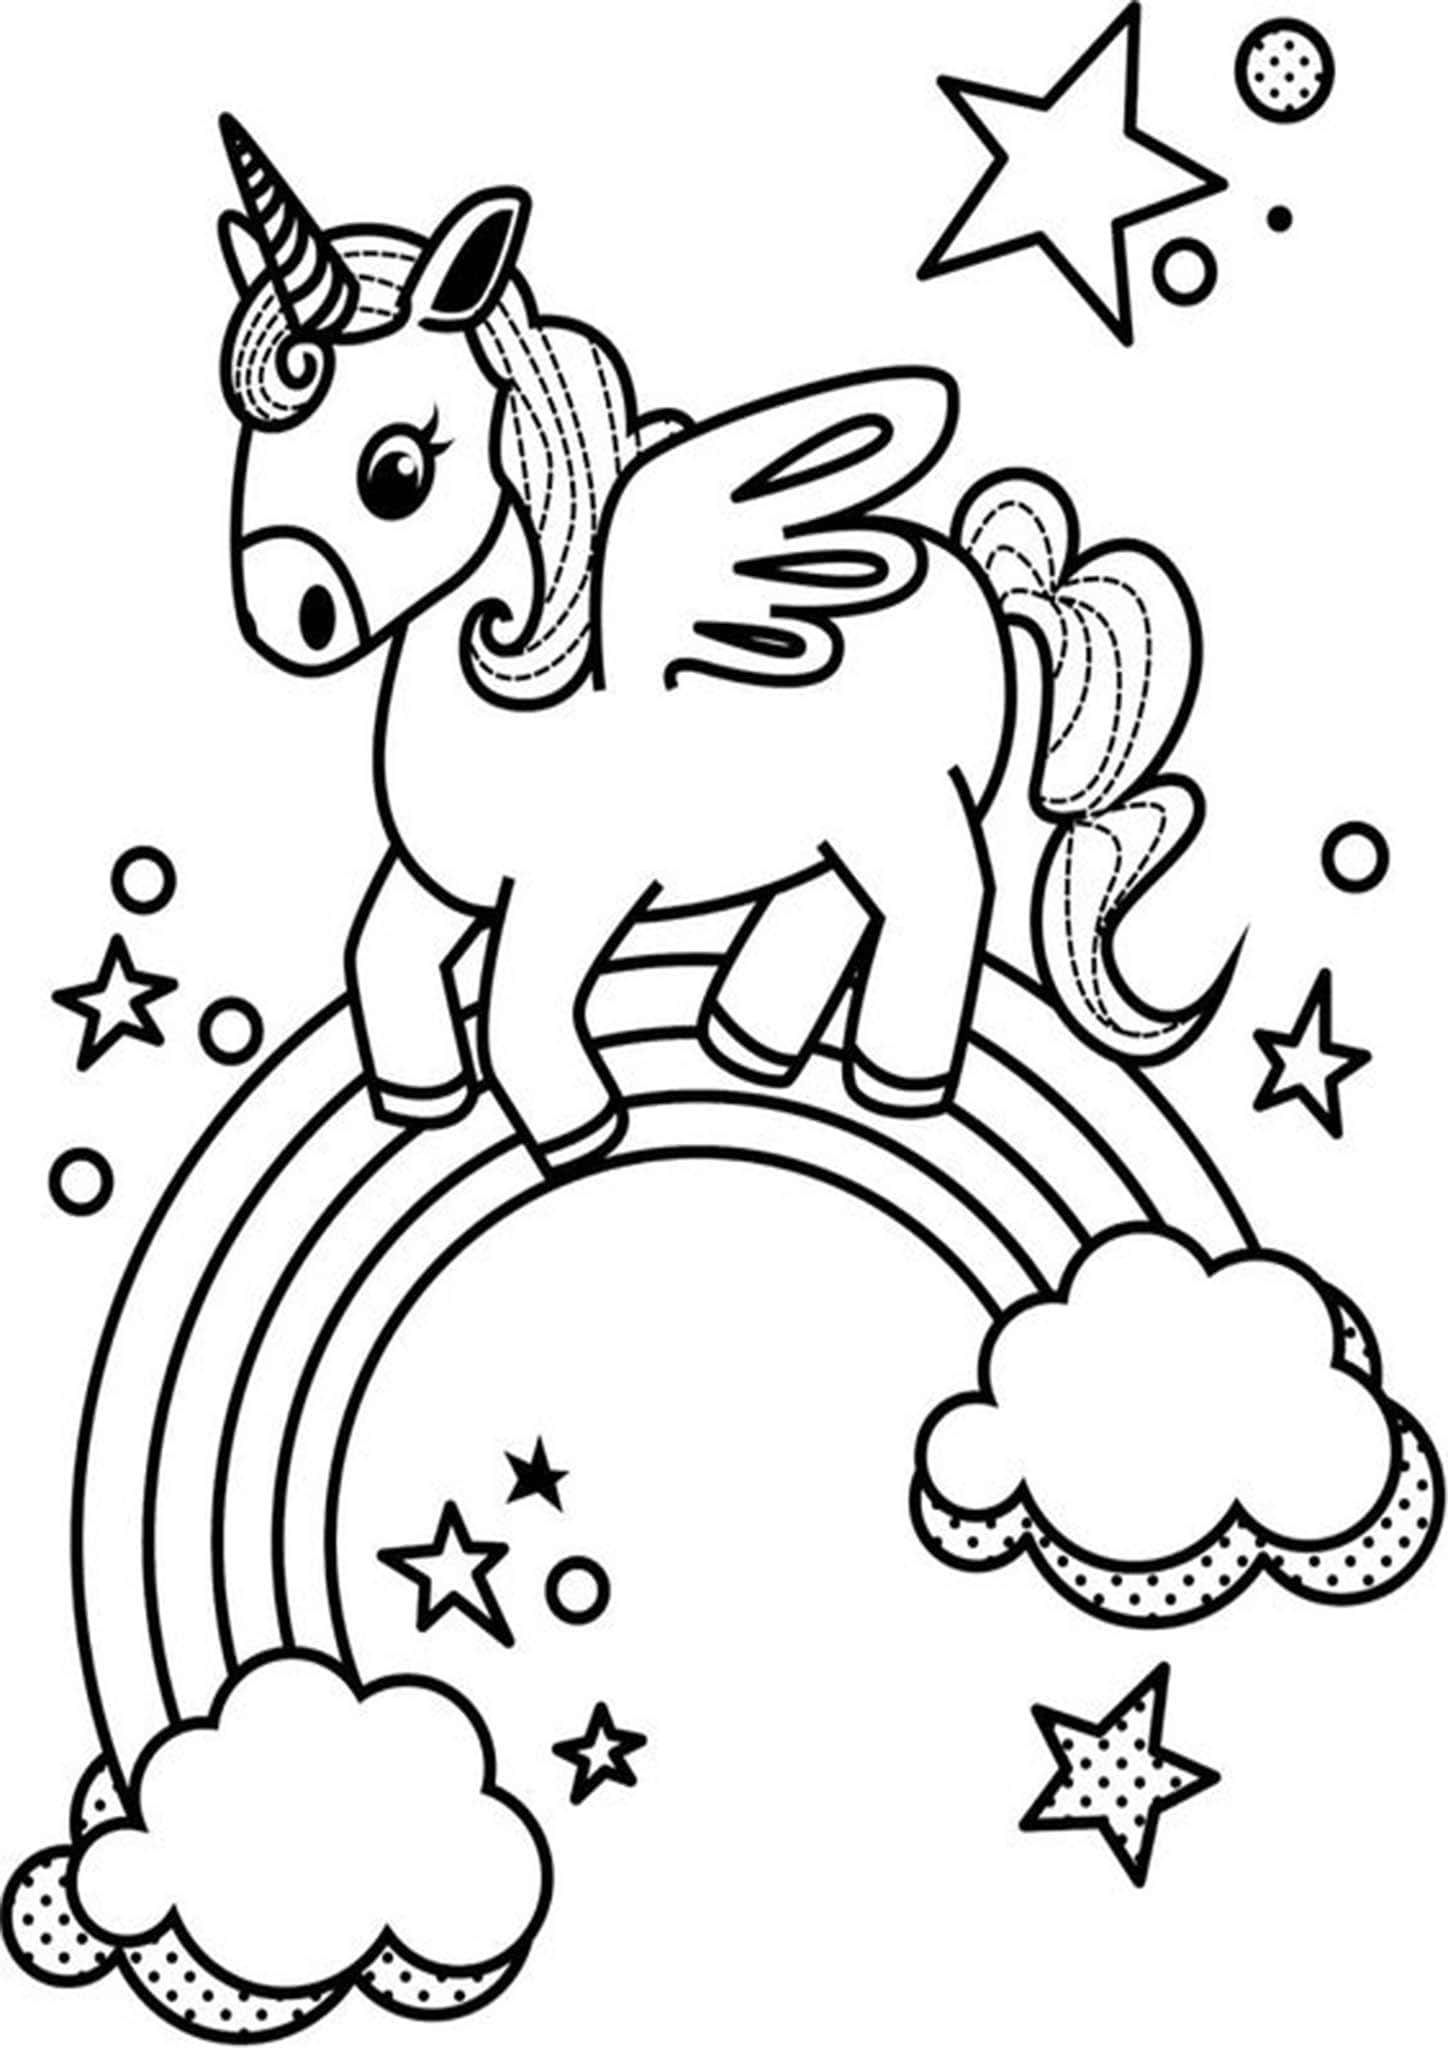 Free Easy To Print Rainbow Coloring Pages Unicorn Coloring Pages Cute Coloring Pages Coloring Books